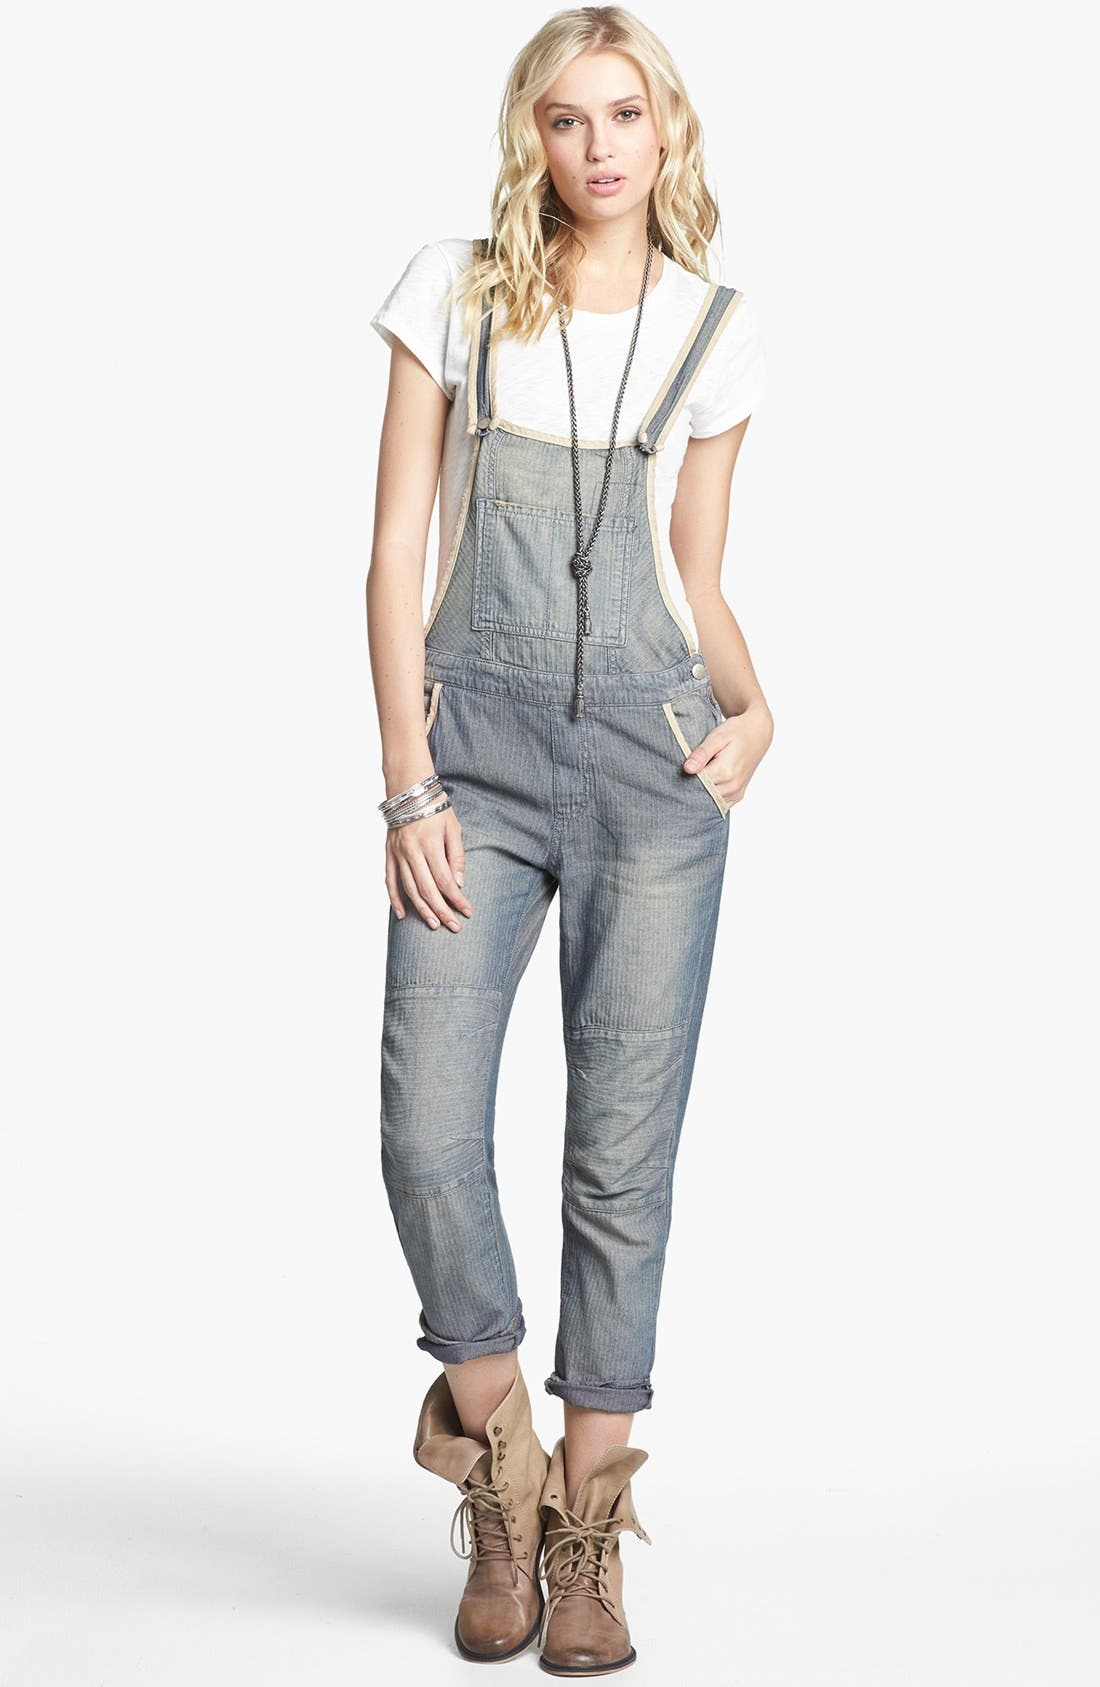 Alternate Image 1 Selected - Free People 'Thomas' Faded Denim Overalls